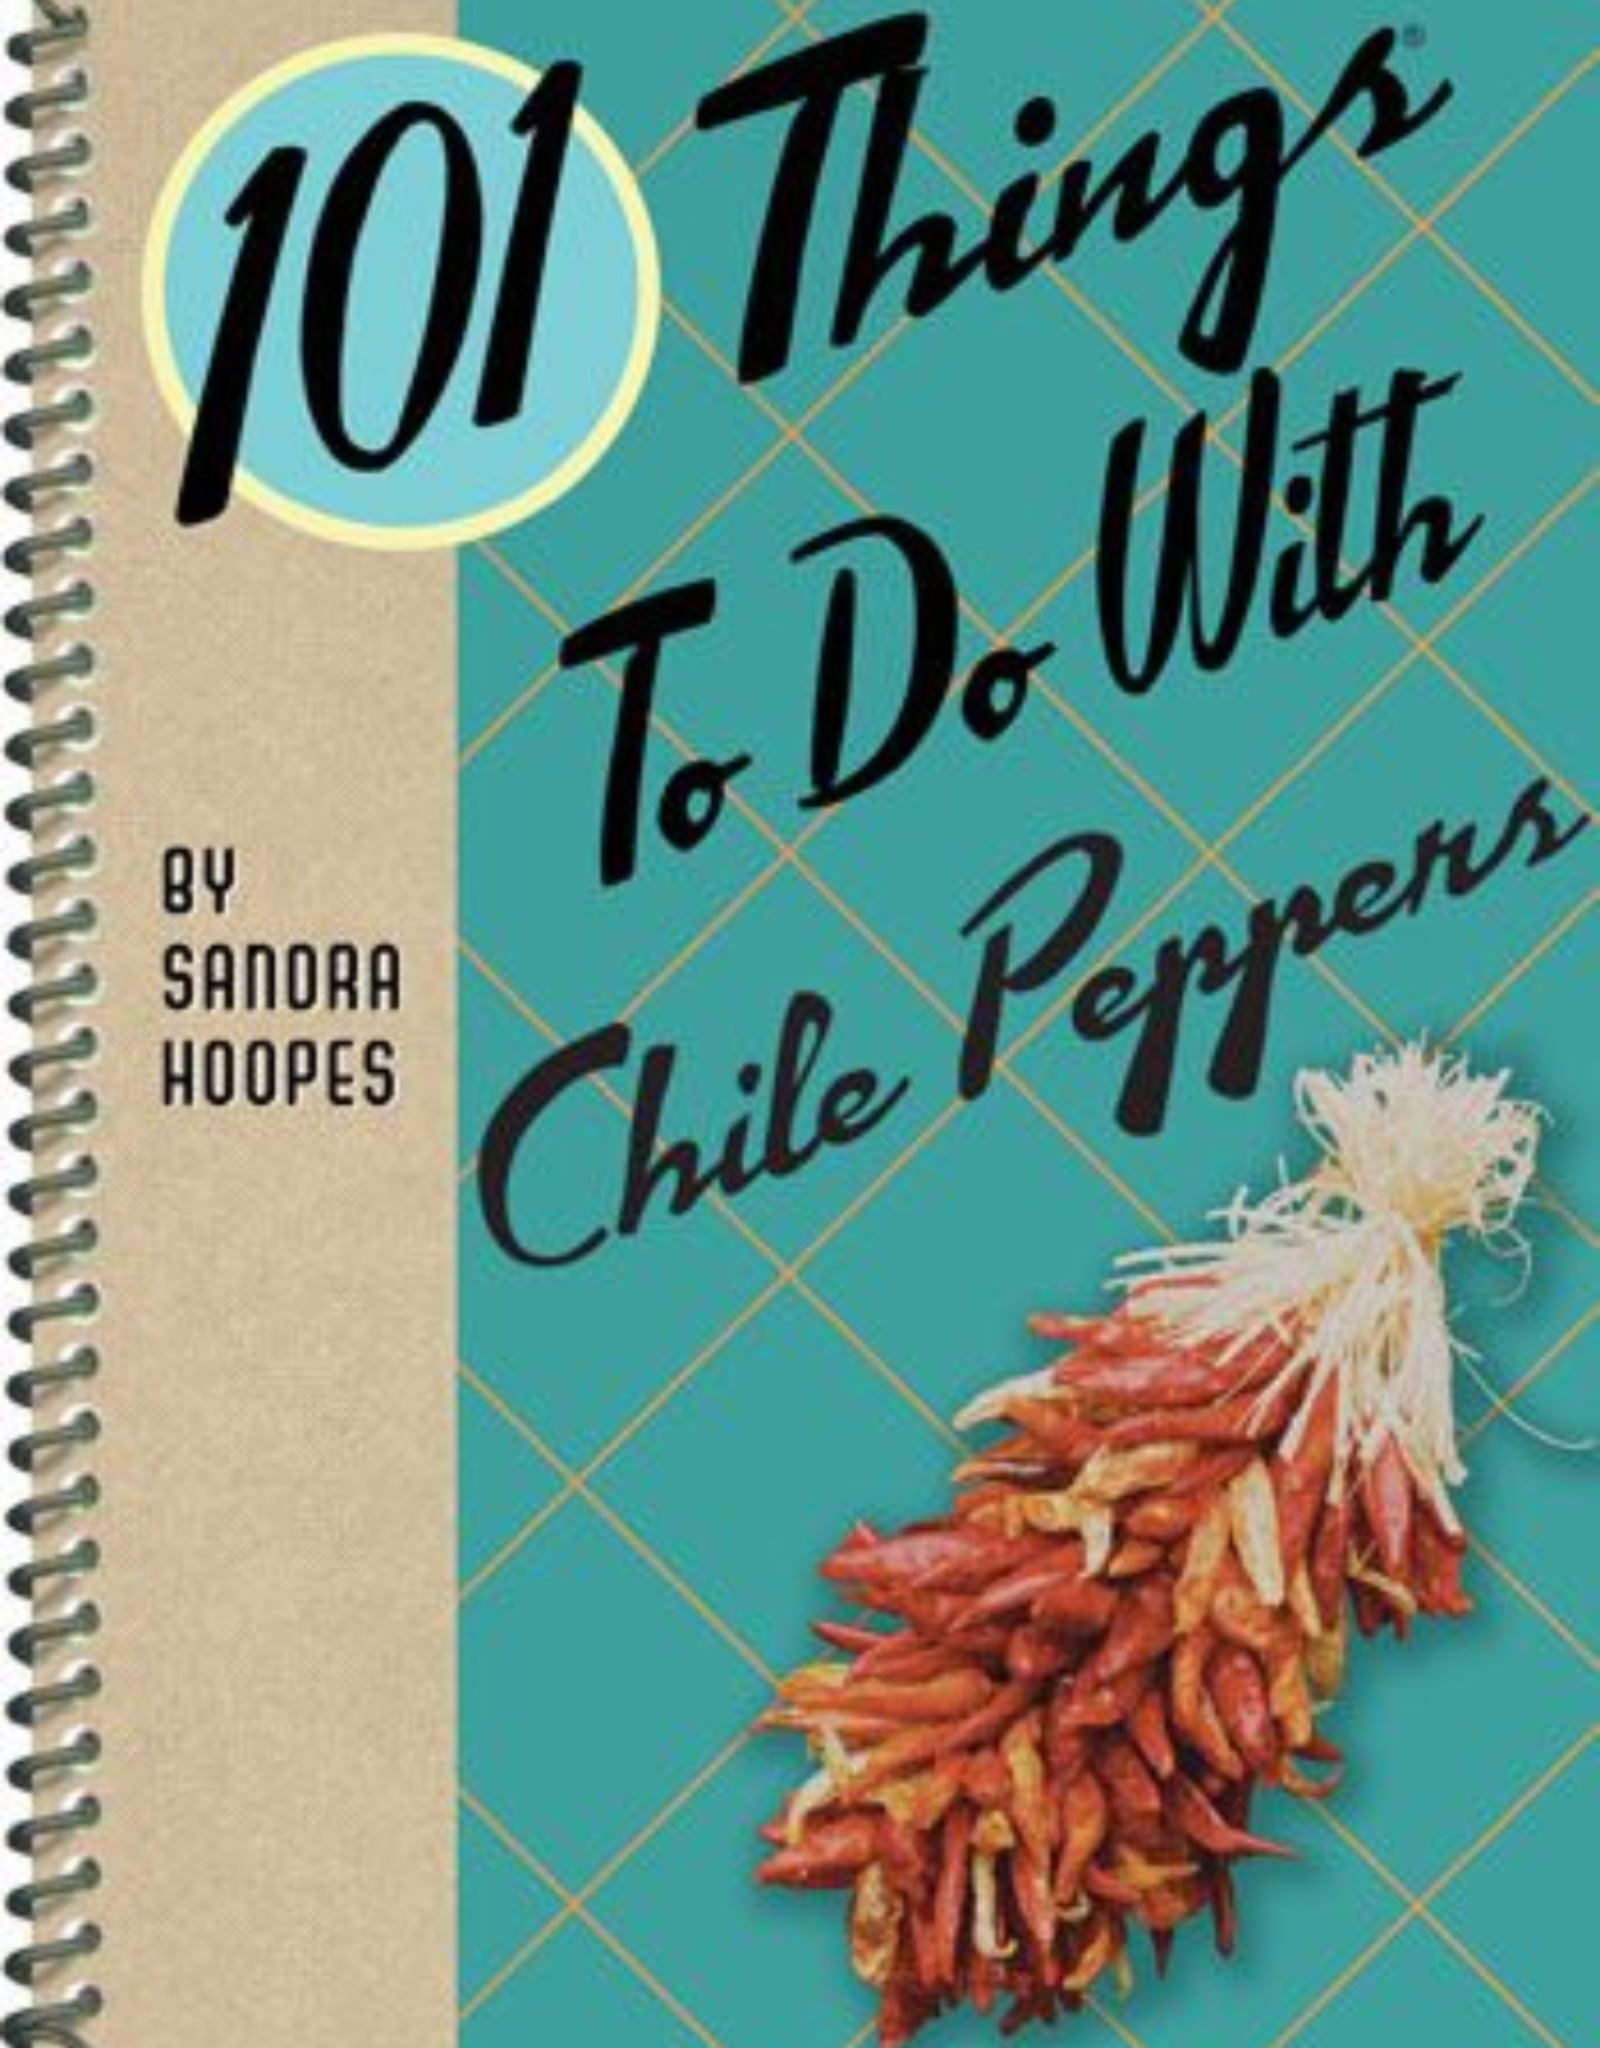 Gibbs Smith 101 Things To Do With Chile Peppers Book